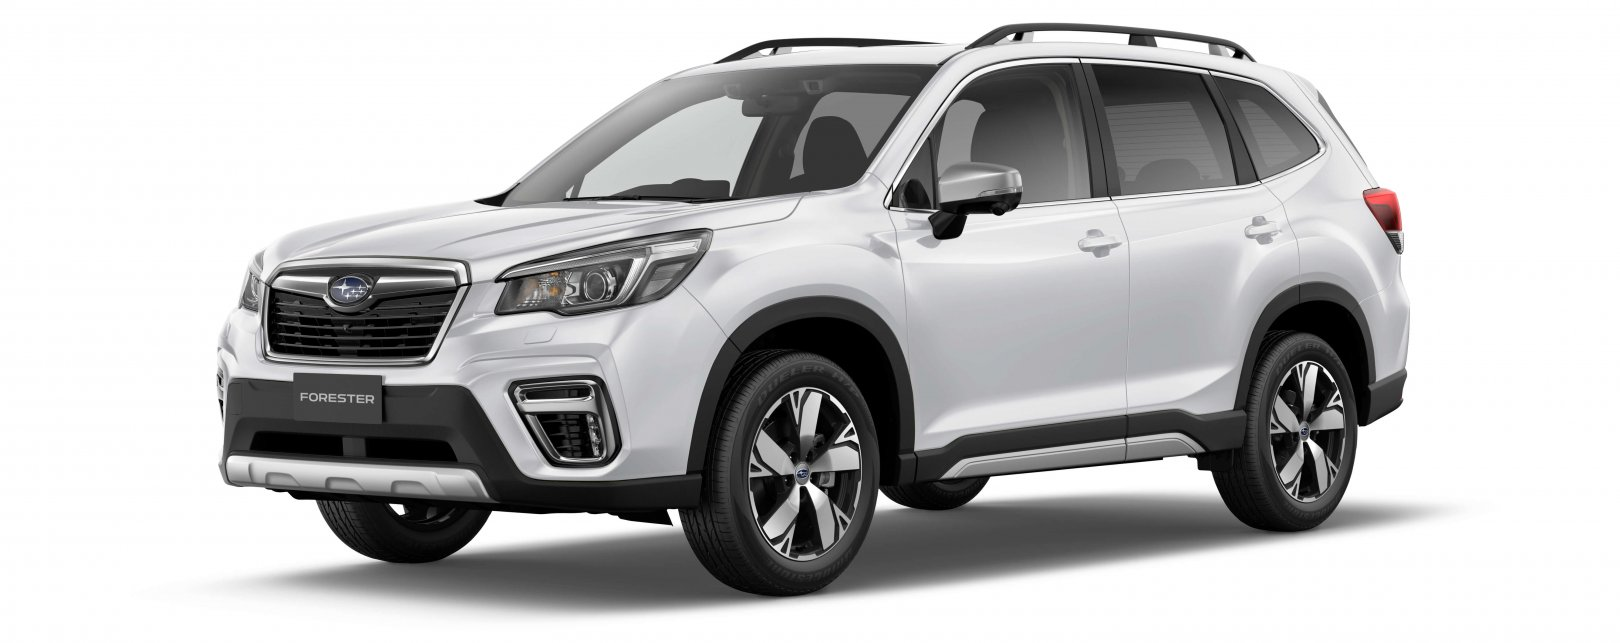 Forester 2.5 Premium CrystalWhitePearl